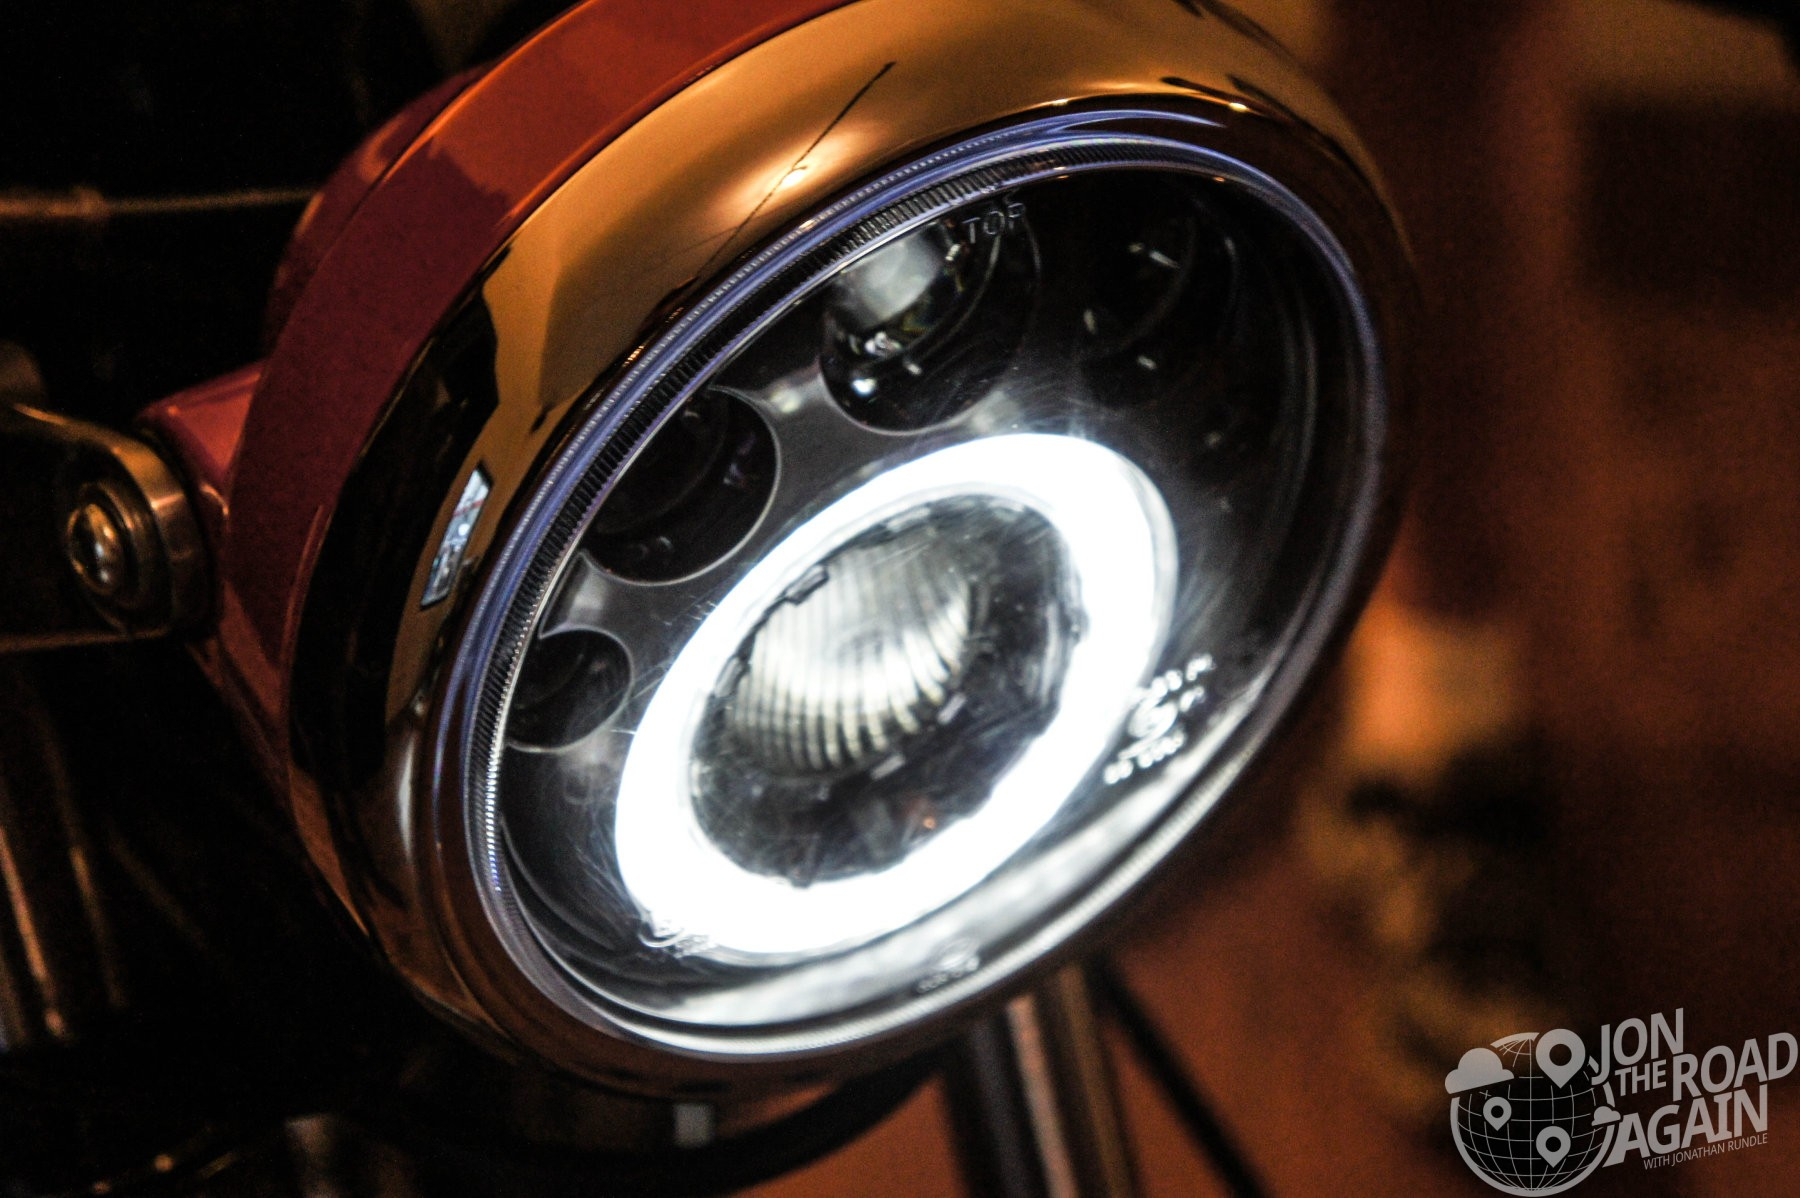 Great LED headlight